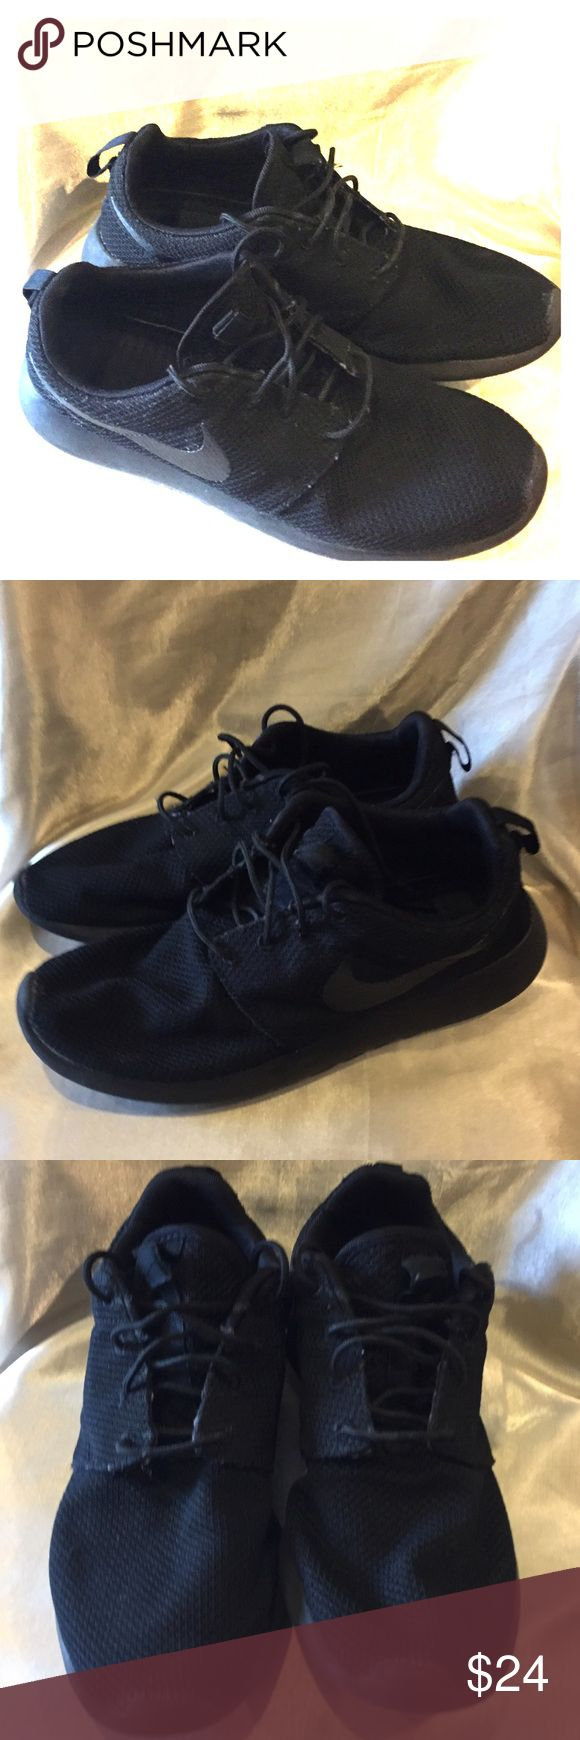 Nike Roshe Black size Men 9 Nike Roshe size Men 9 this shoes looks great the sole has been worn please see pictures make me an offer👇 Nike Shoes Athletic Shoes